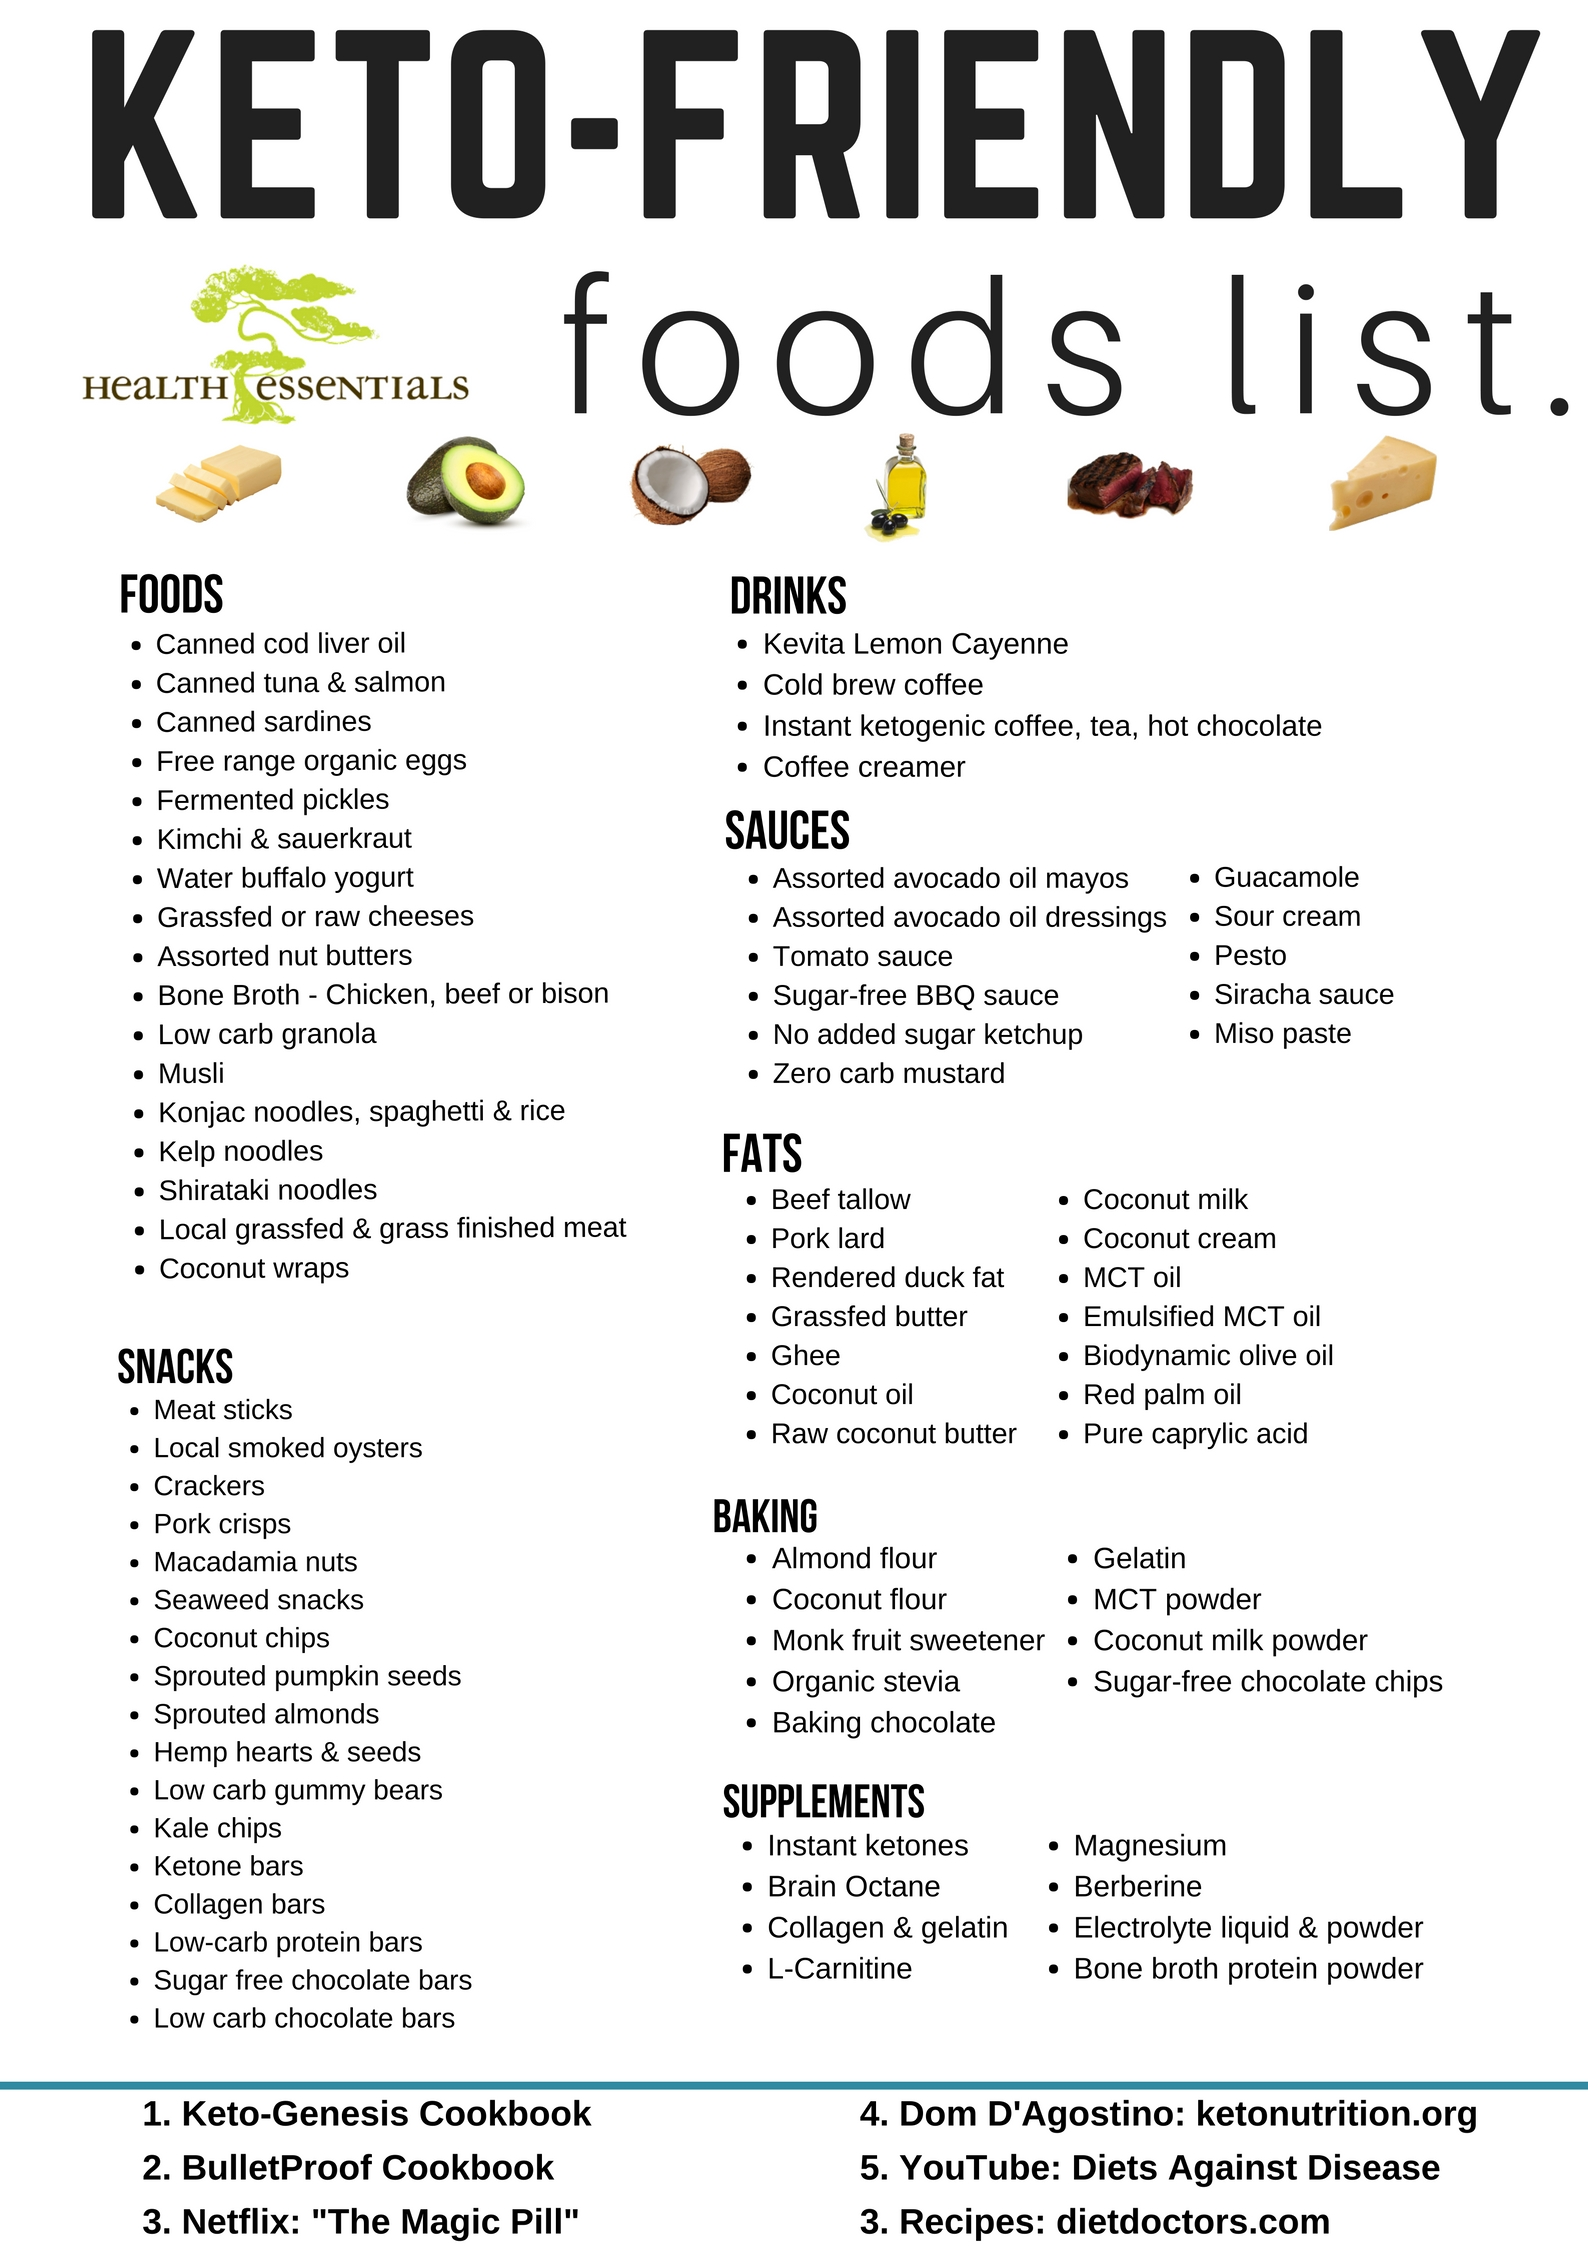 keto Friendly Foods list